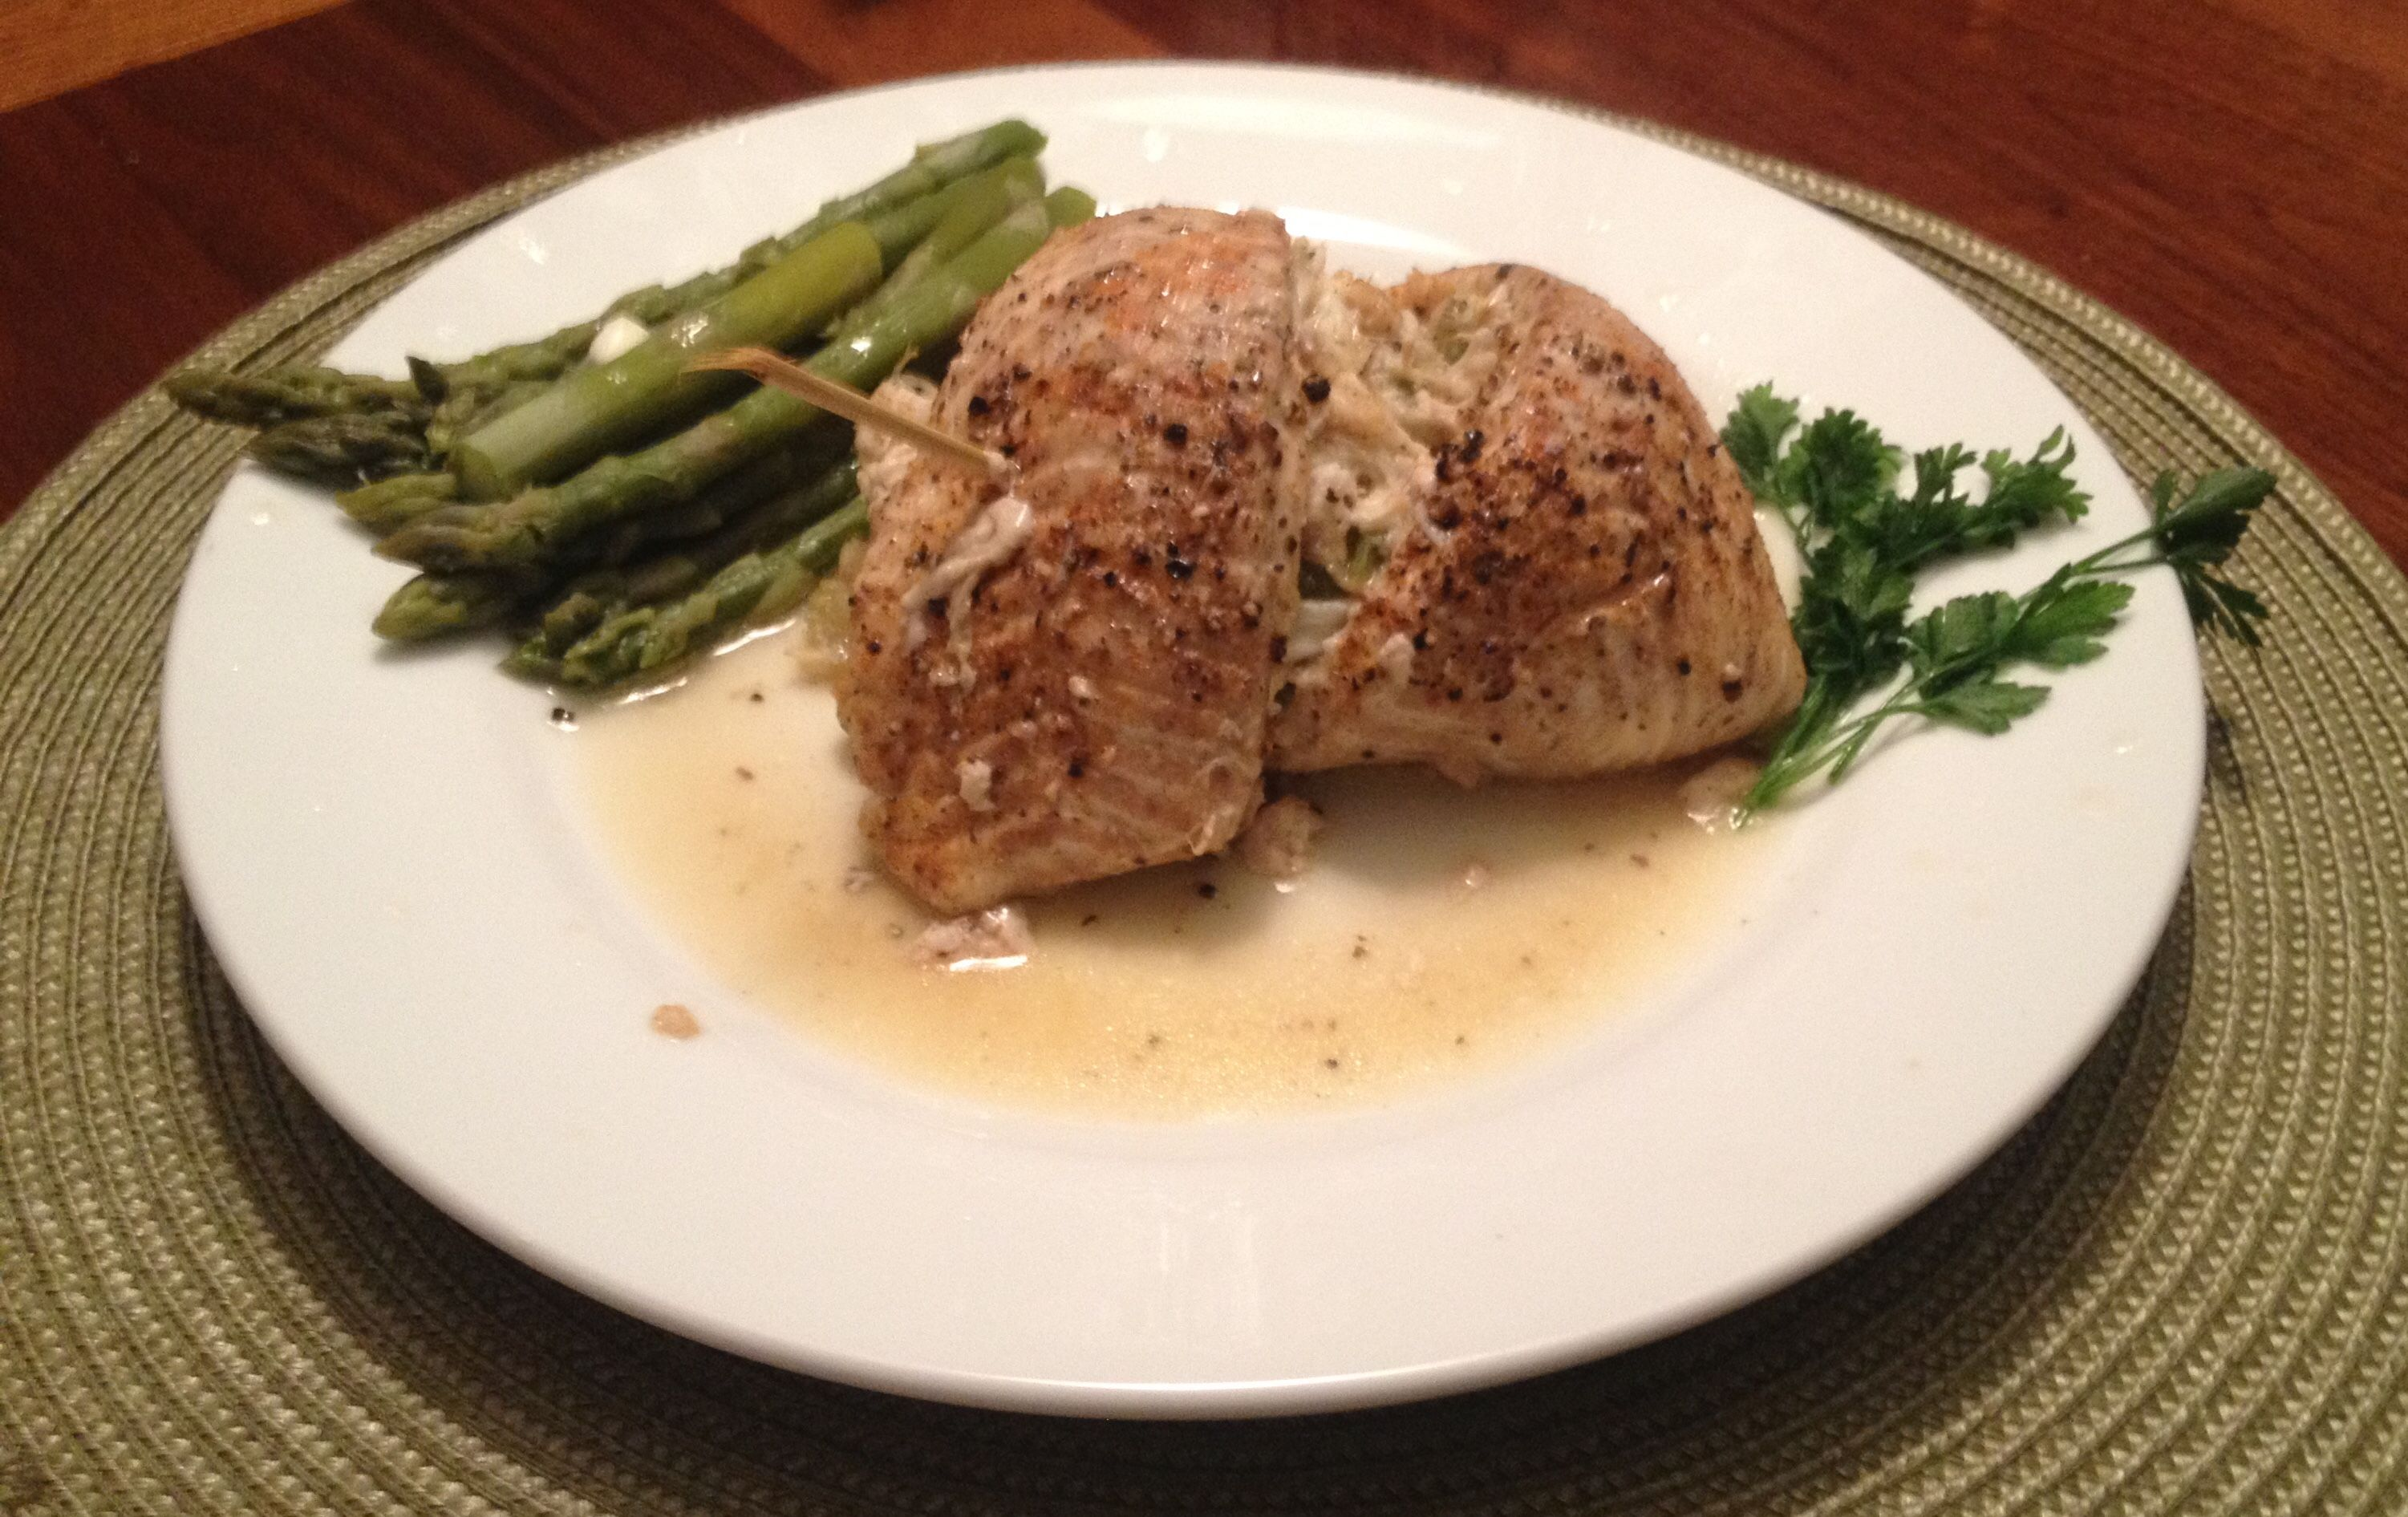 Garlic roasted stuffed flounder with crab meat !! OMG ! SO delicious